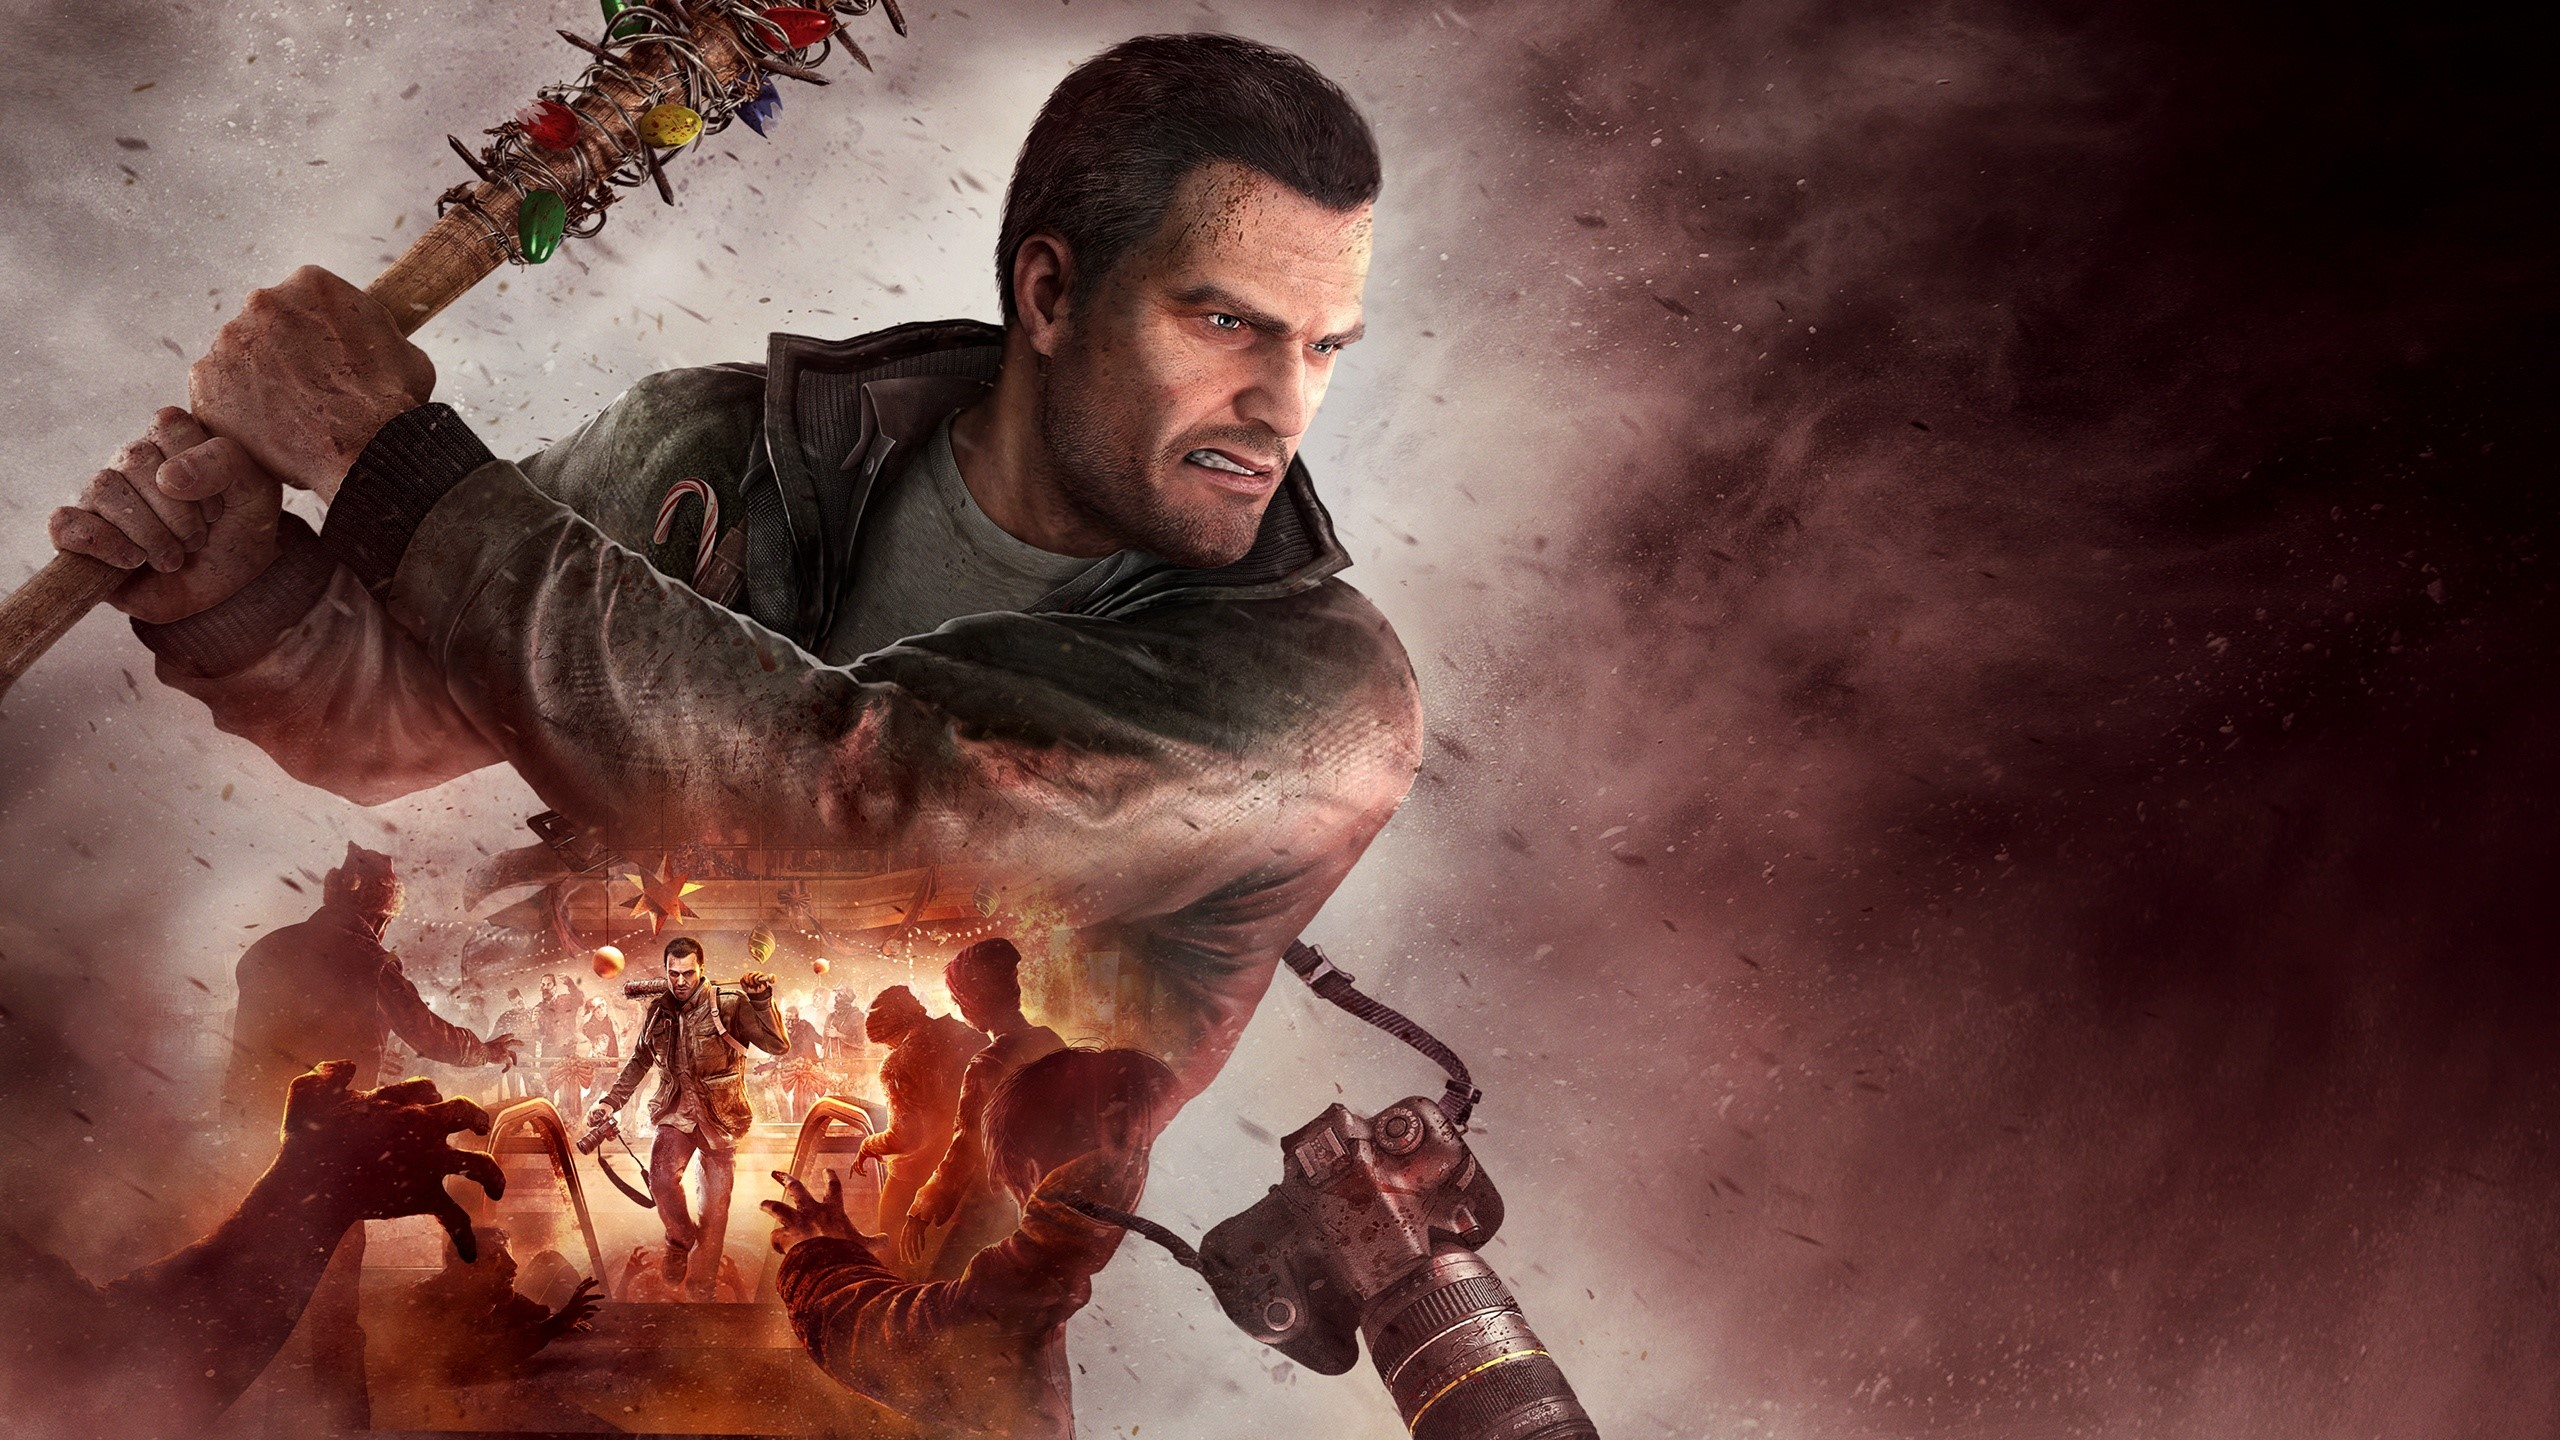 Wallpaper Frank West de Dead Rising 4 Images